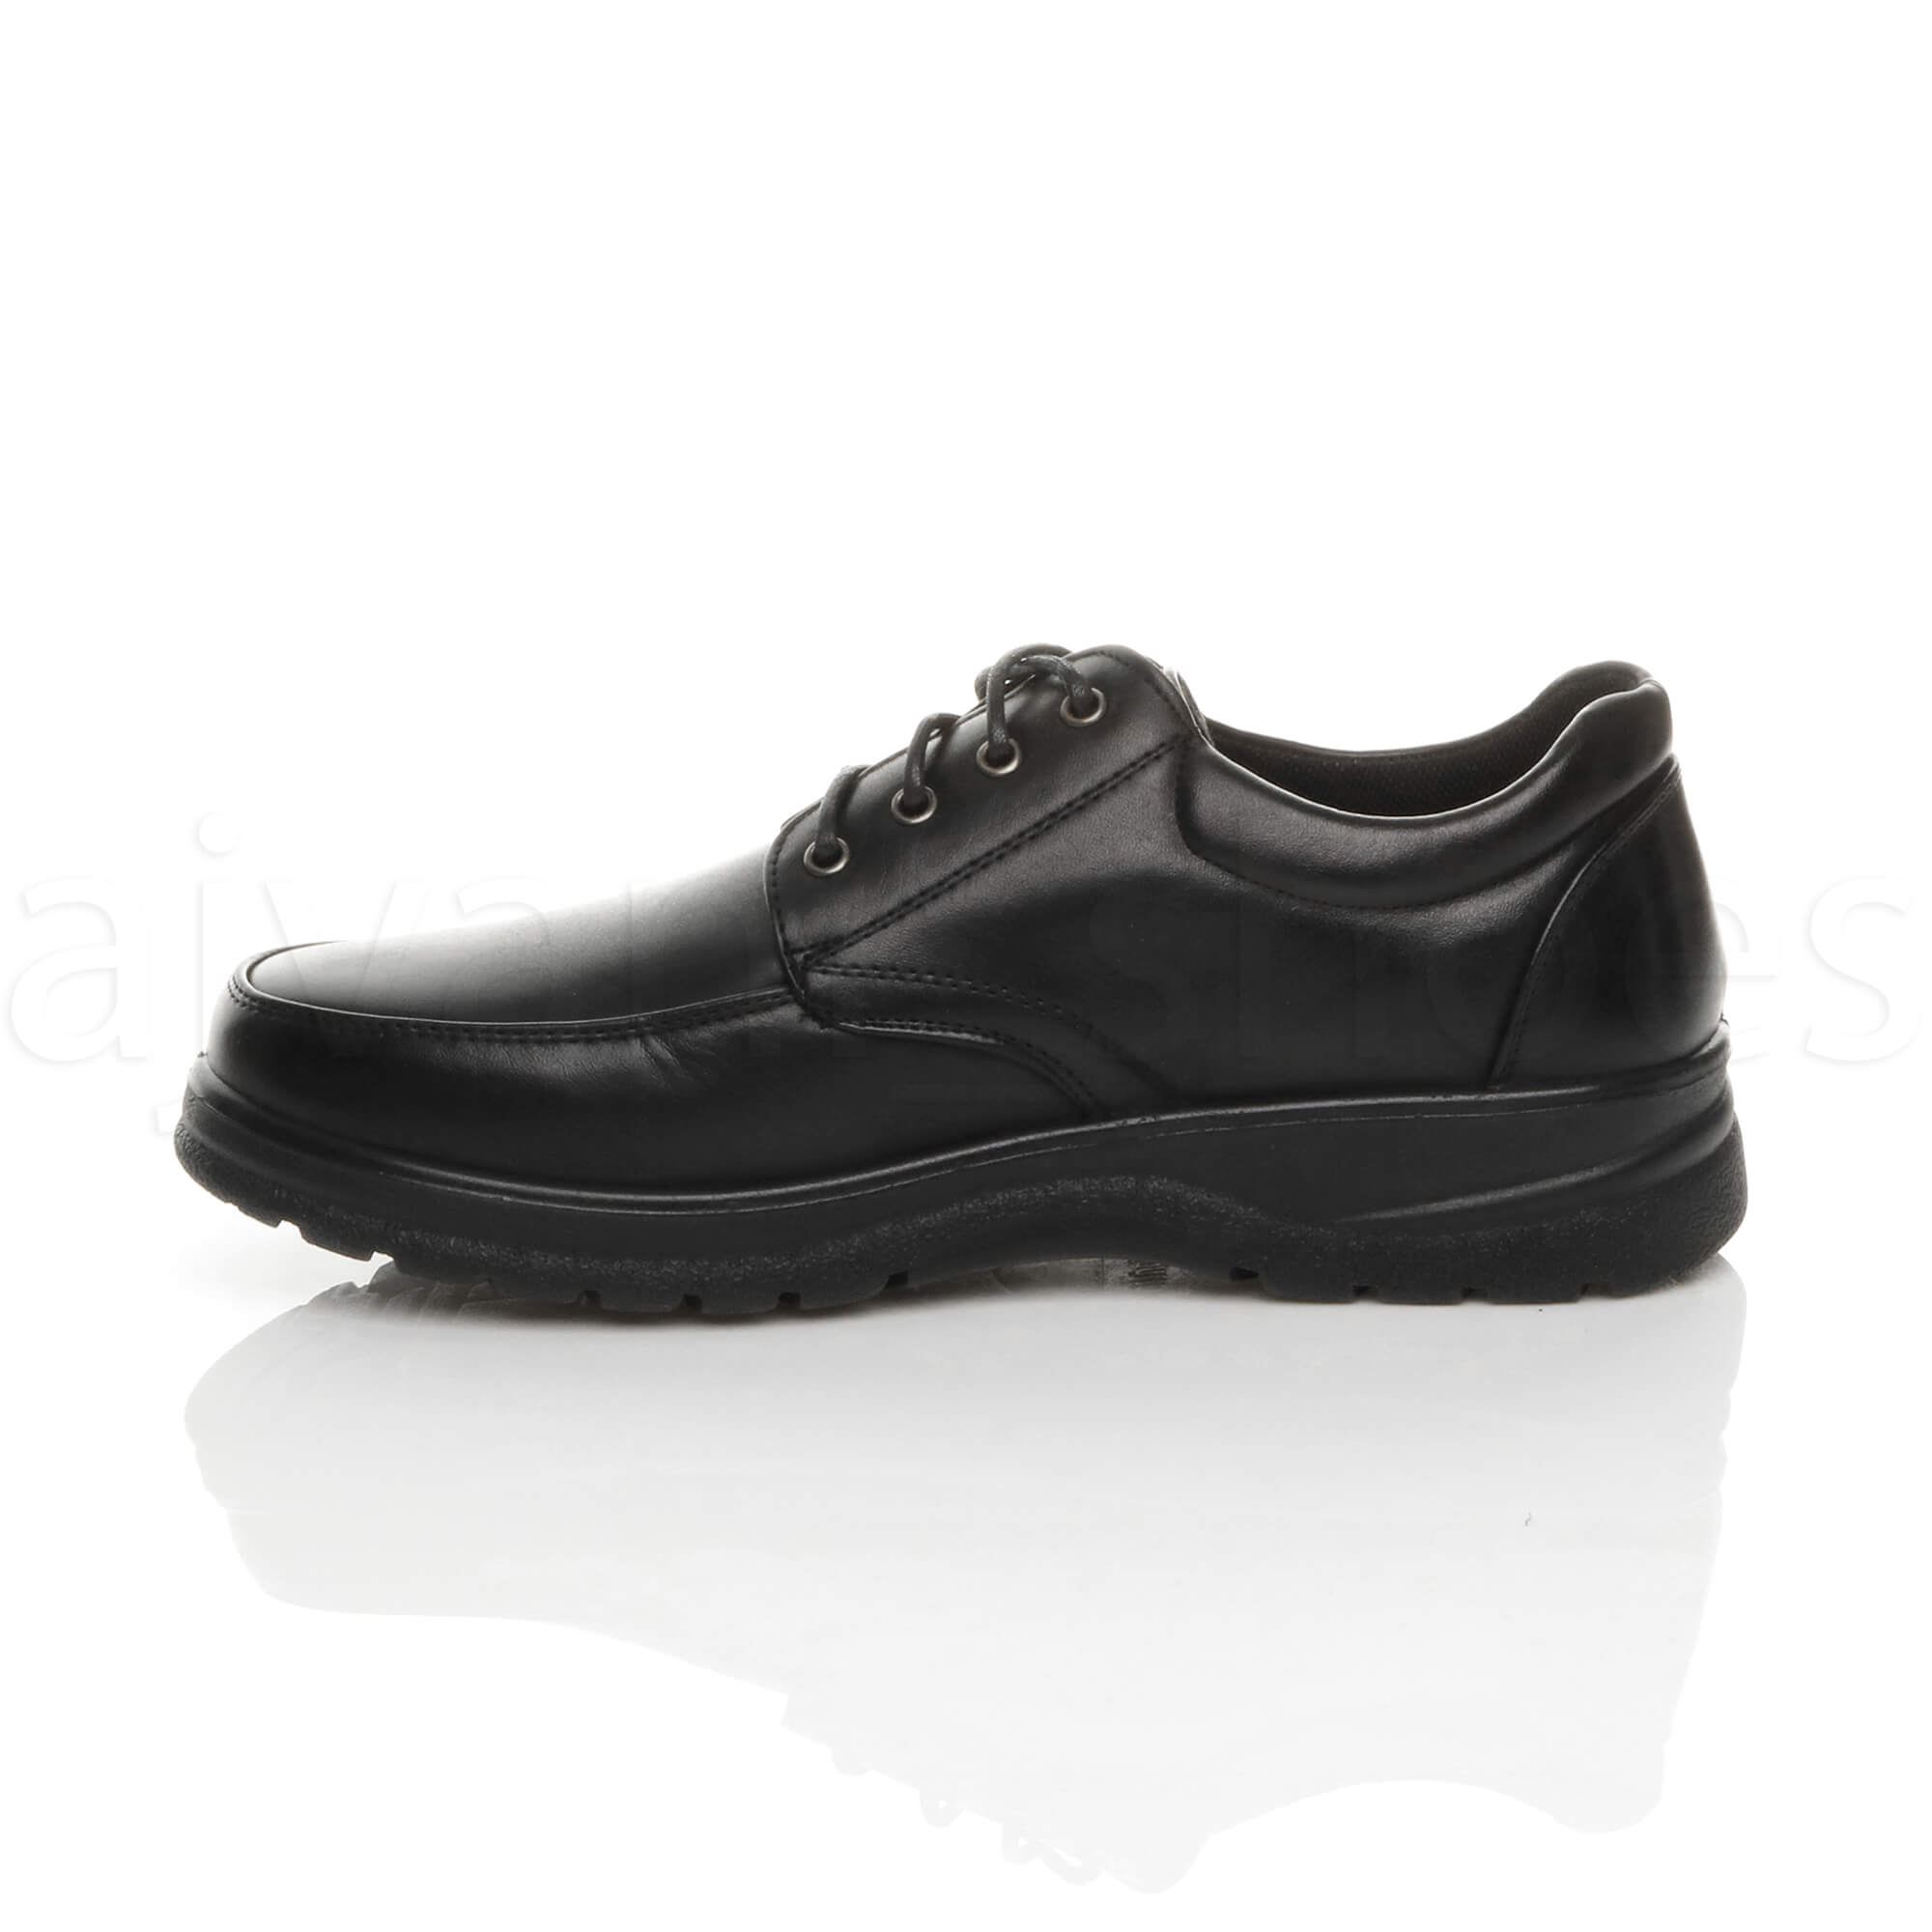 MENS-LACE-UP-CASUAL-MEMORY-FOAM-INSOLE-COMFORT-CUSHIONED-WORK-SHOES-SIZE thumbnail 4